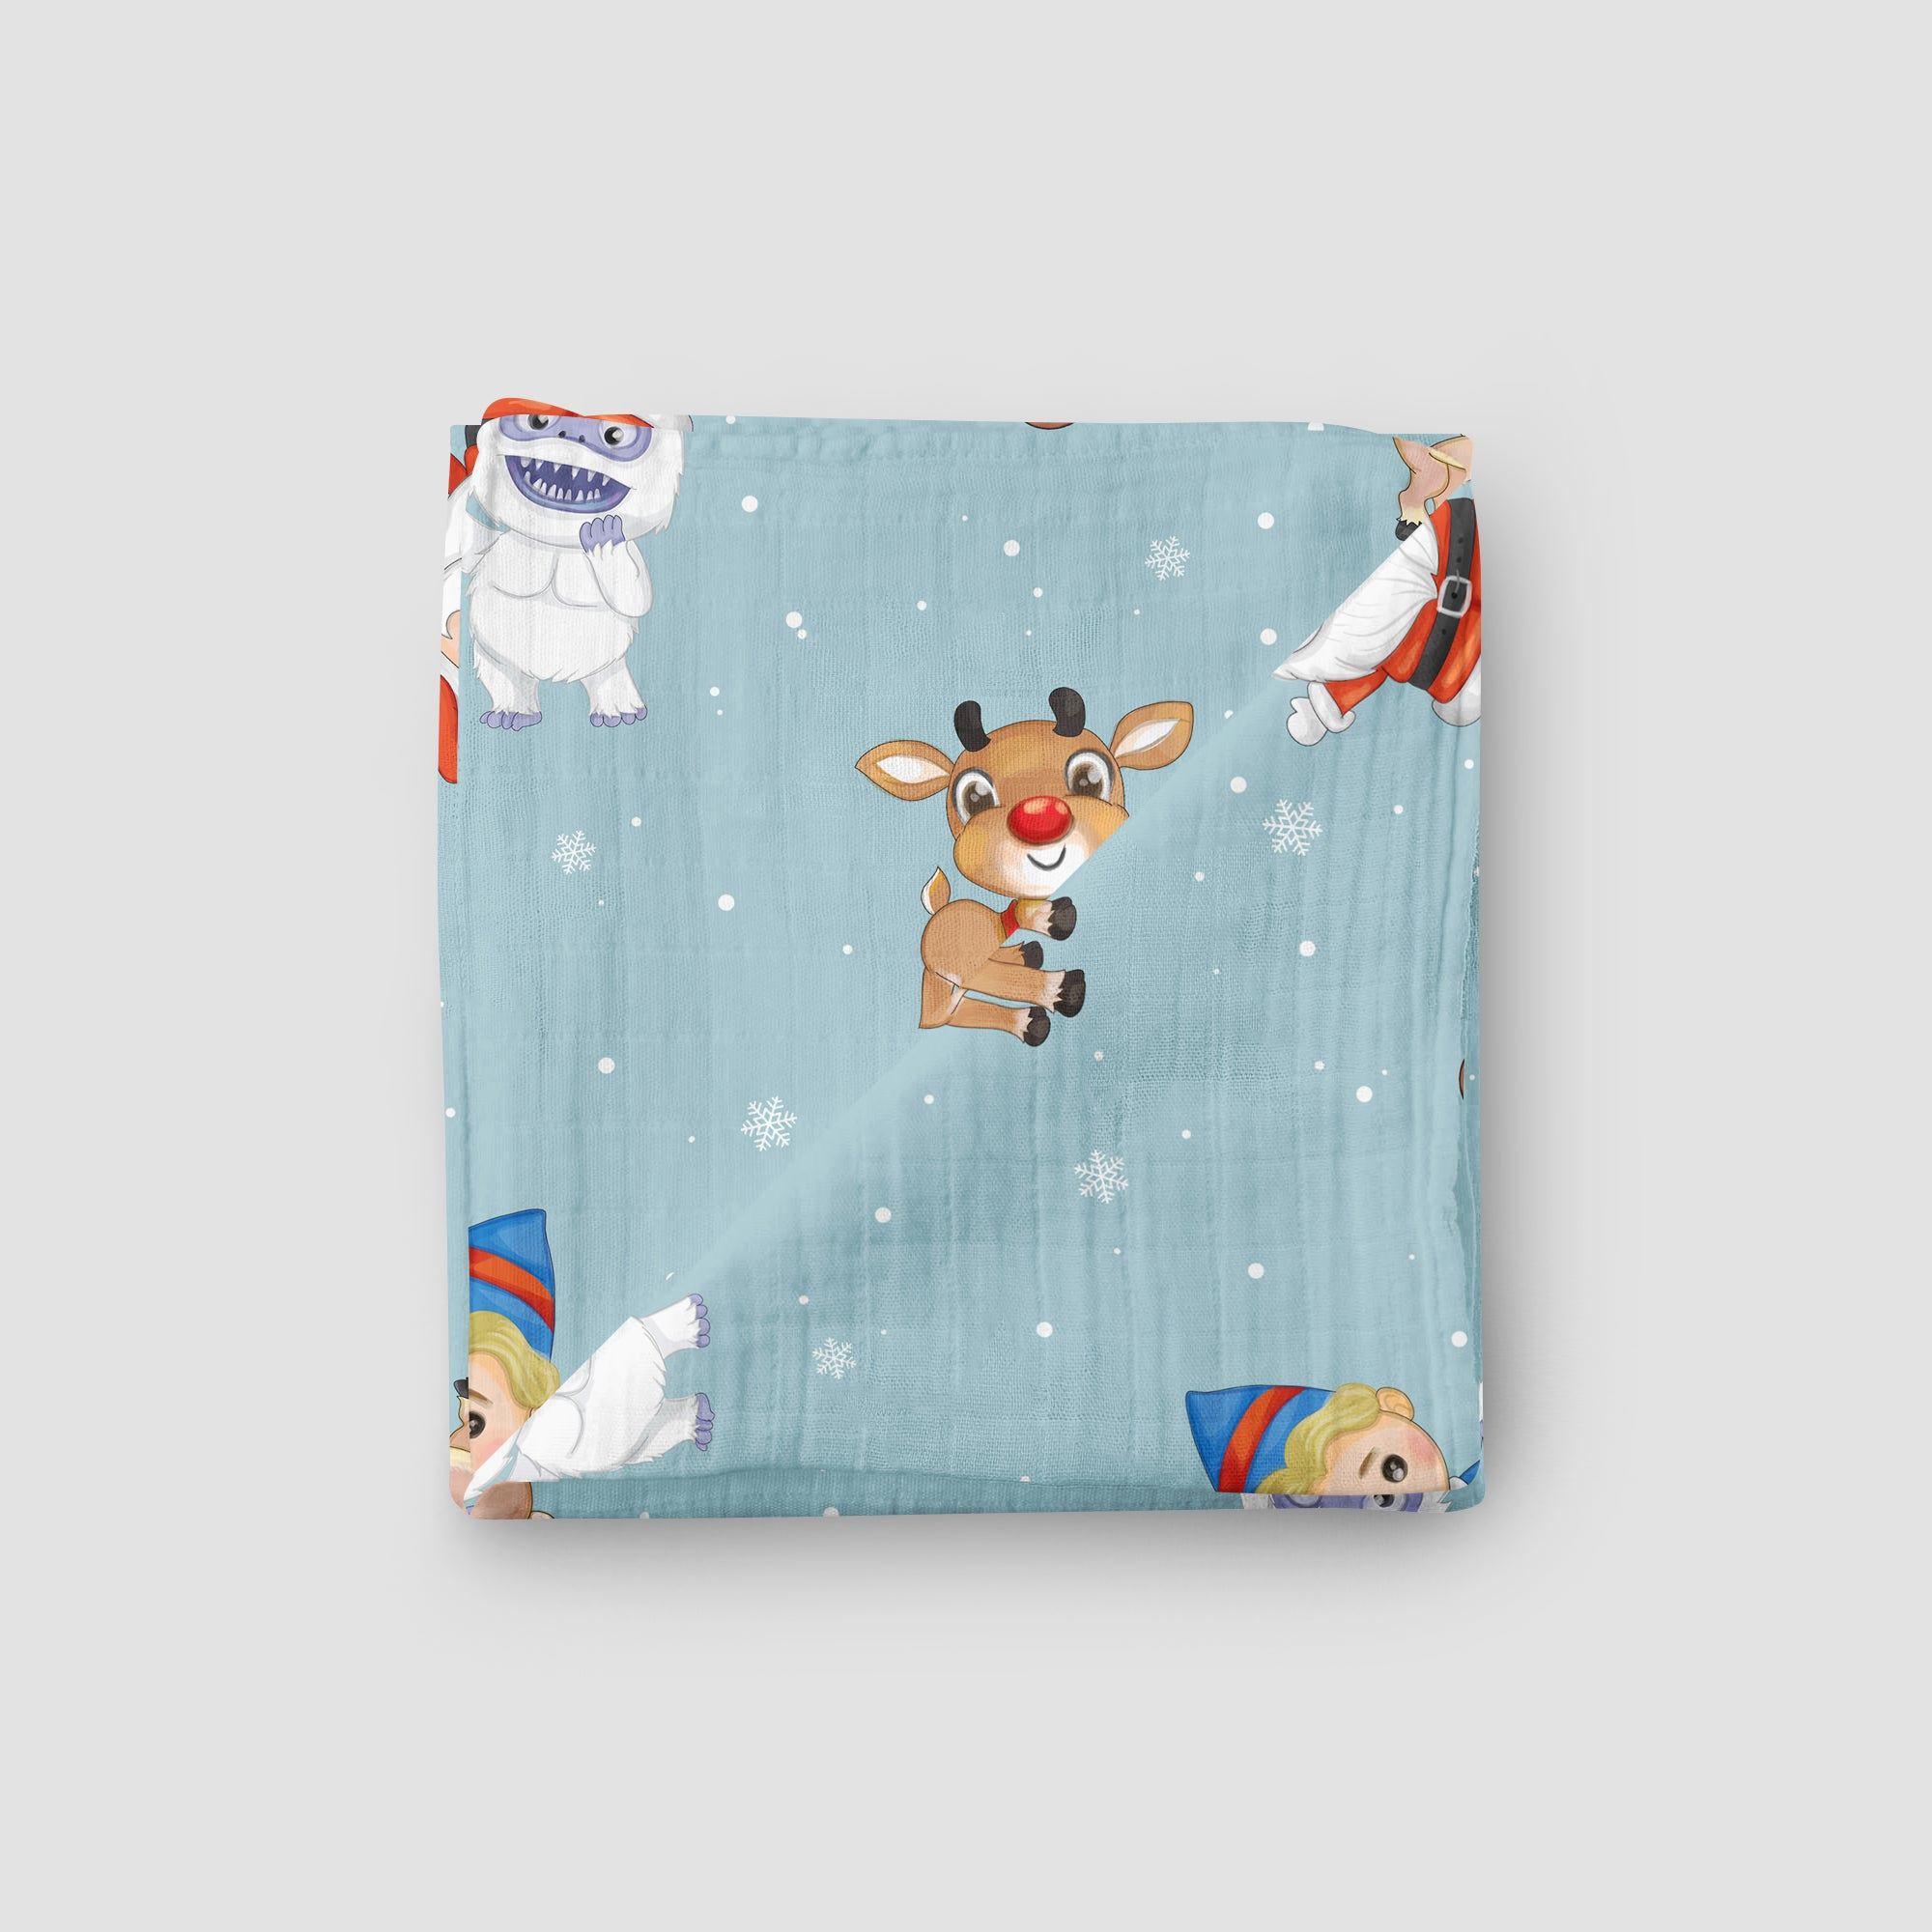 Limited Edition Christmas Reindeer Games